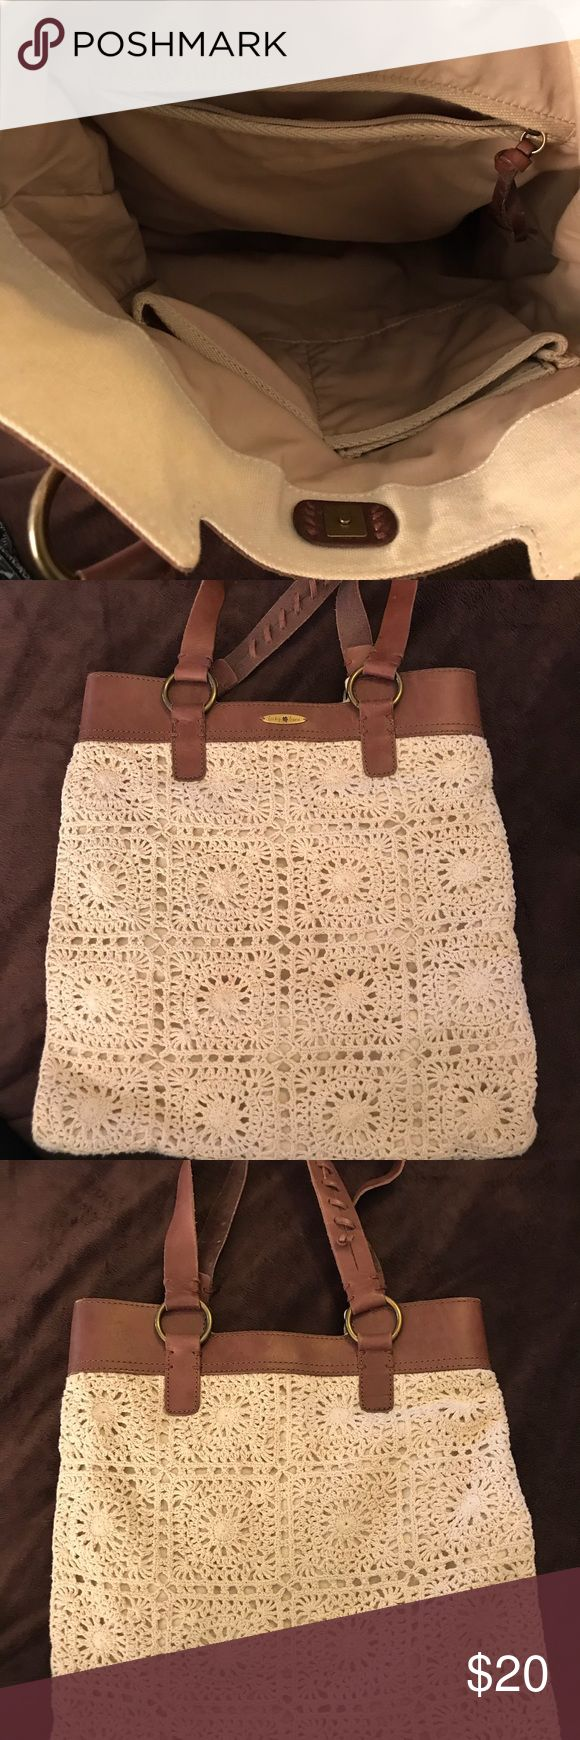 Lucky Brand Crocheted Purse/Tote- EUC Fun cream colored Lucky Brand crocheted purse/tote with brown leather straps. Great condition! Lucky Brand Bags Totes